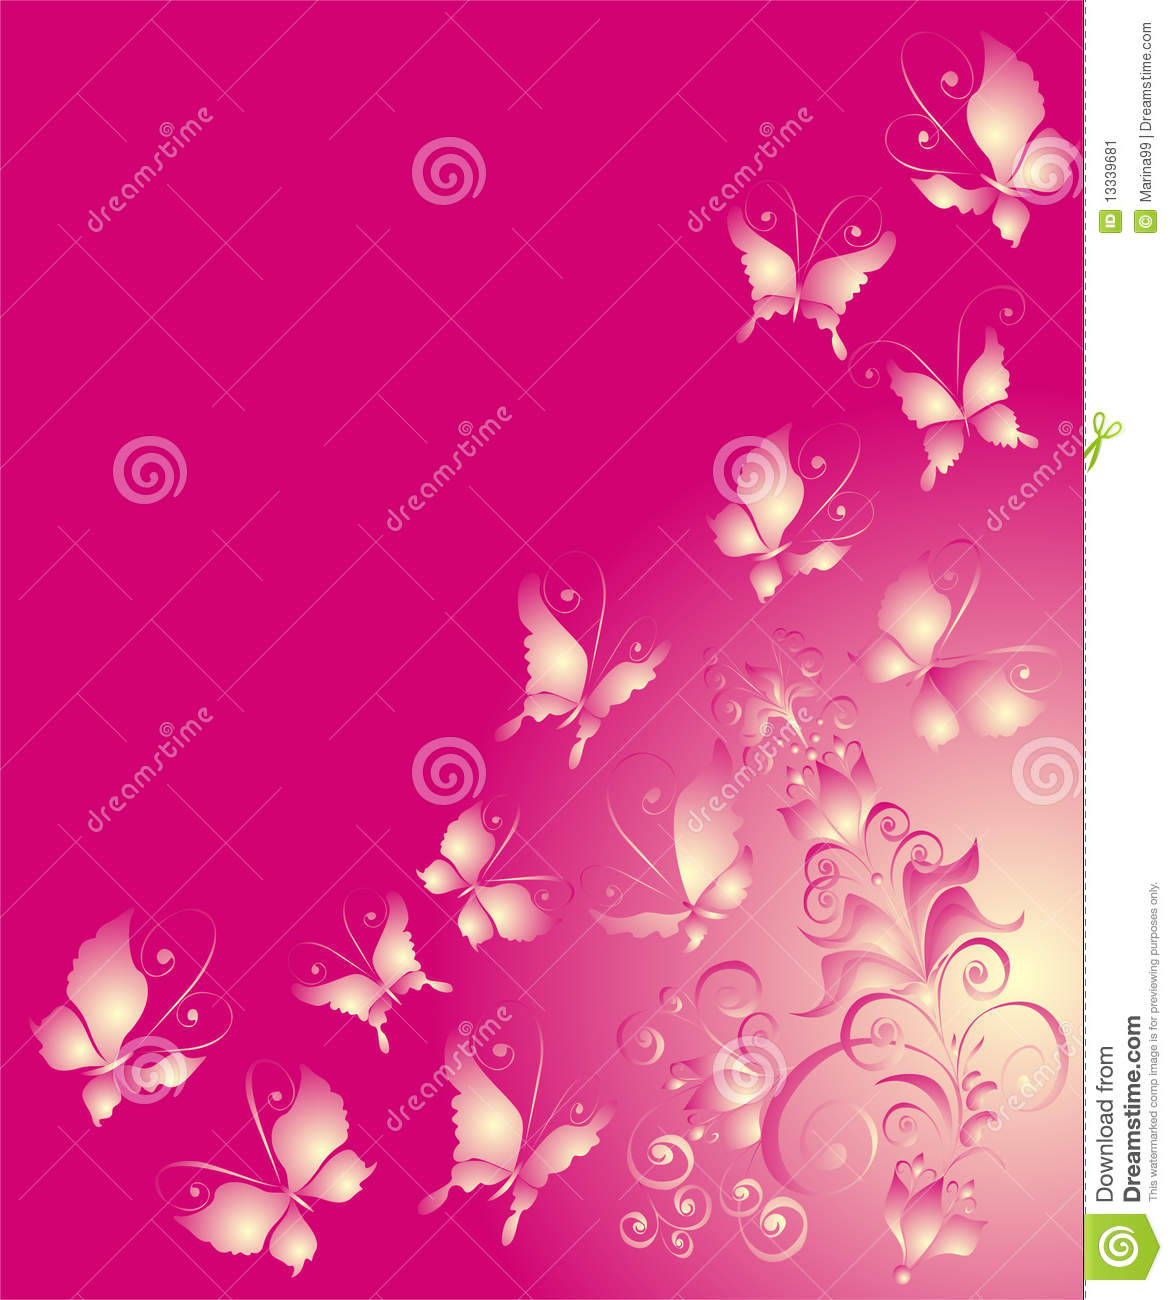 butterfly and florel ornament, vector illustration